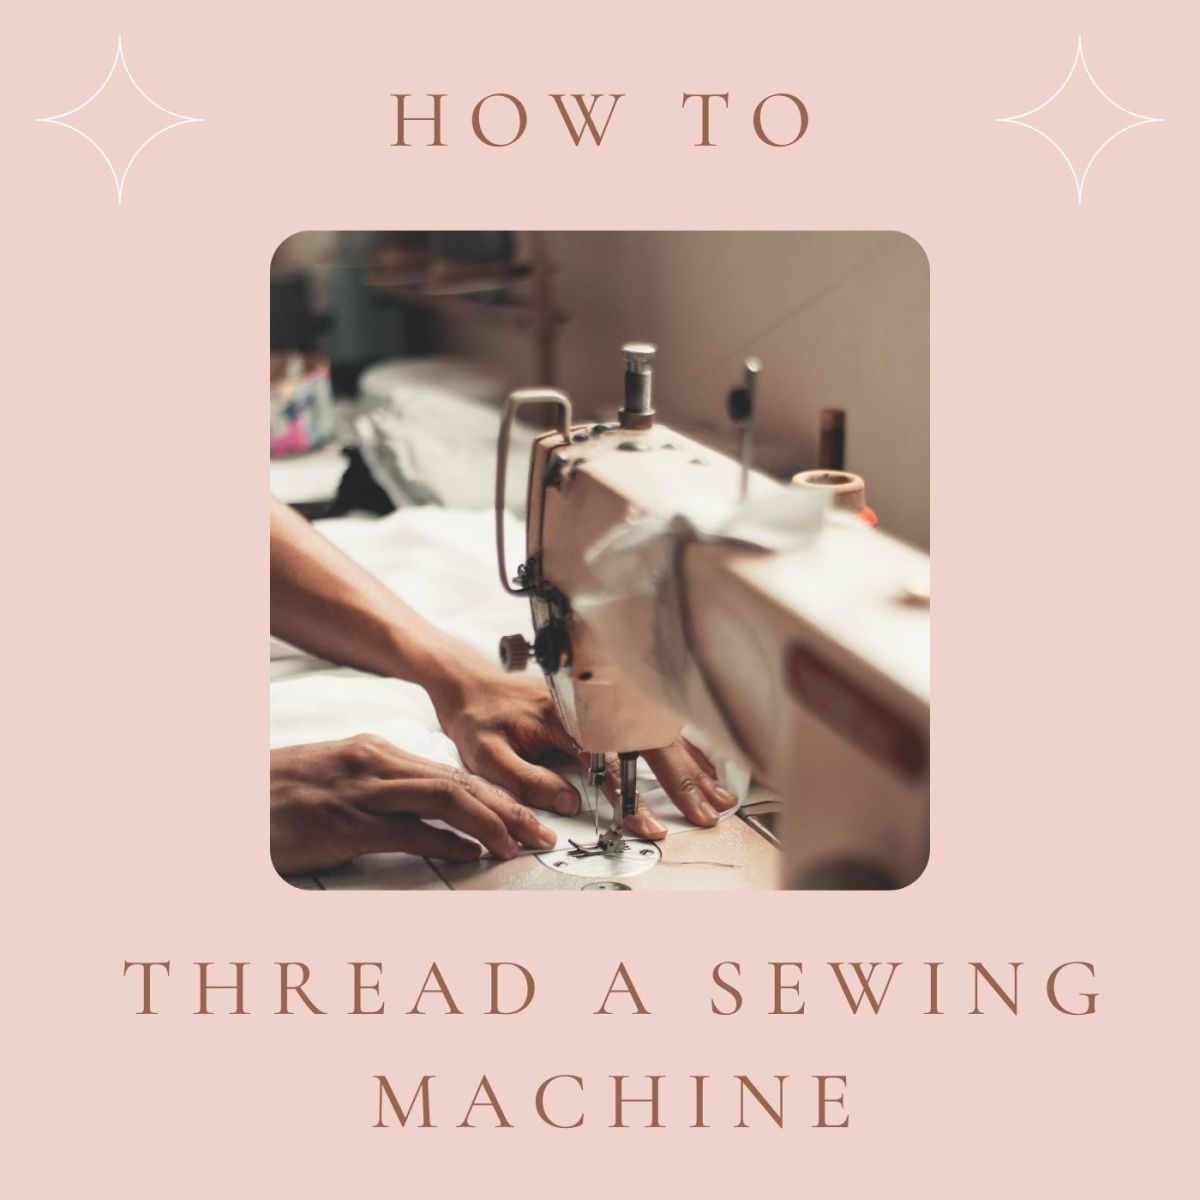 Threading a sewing machine is easier than you think.